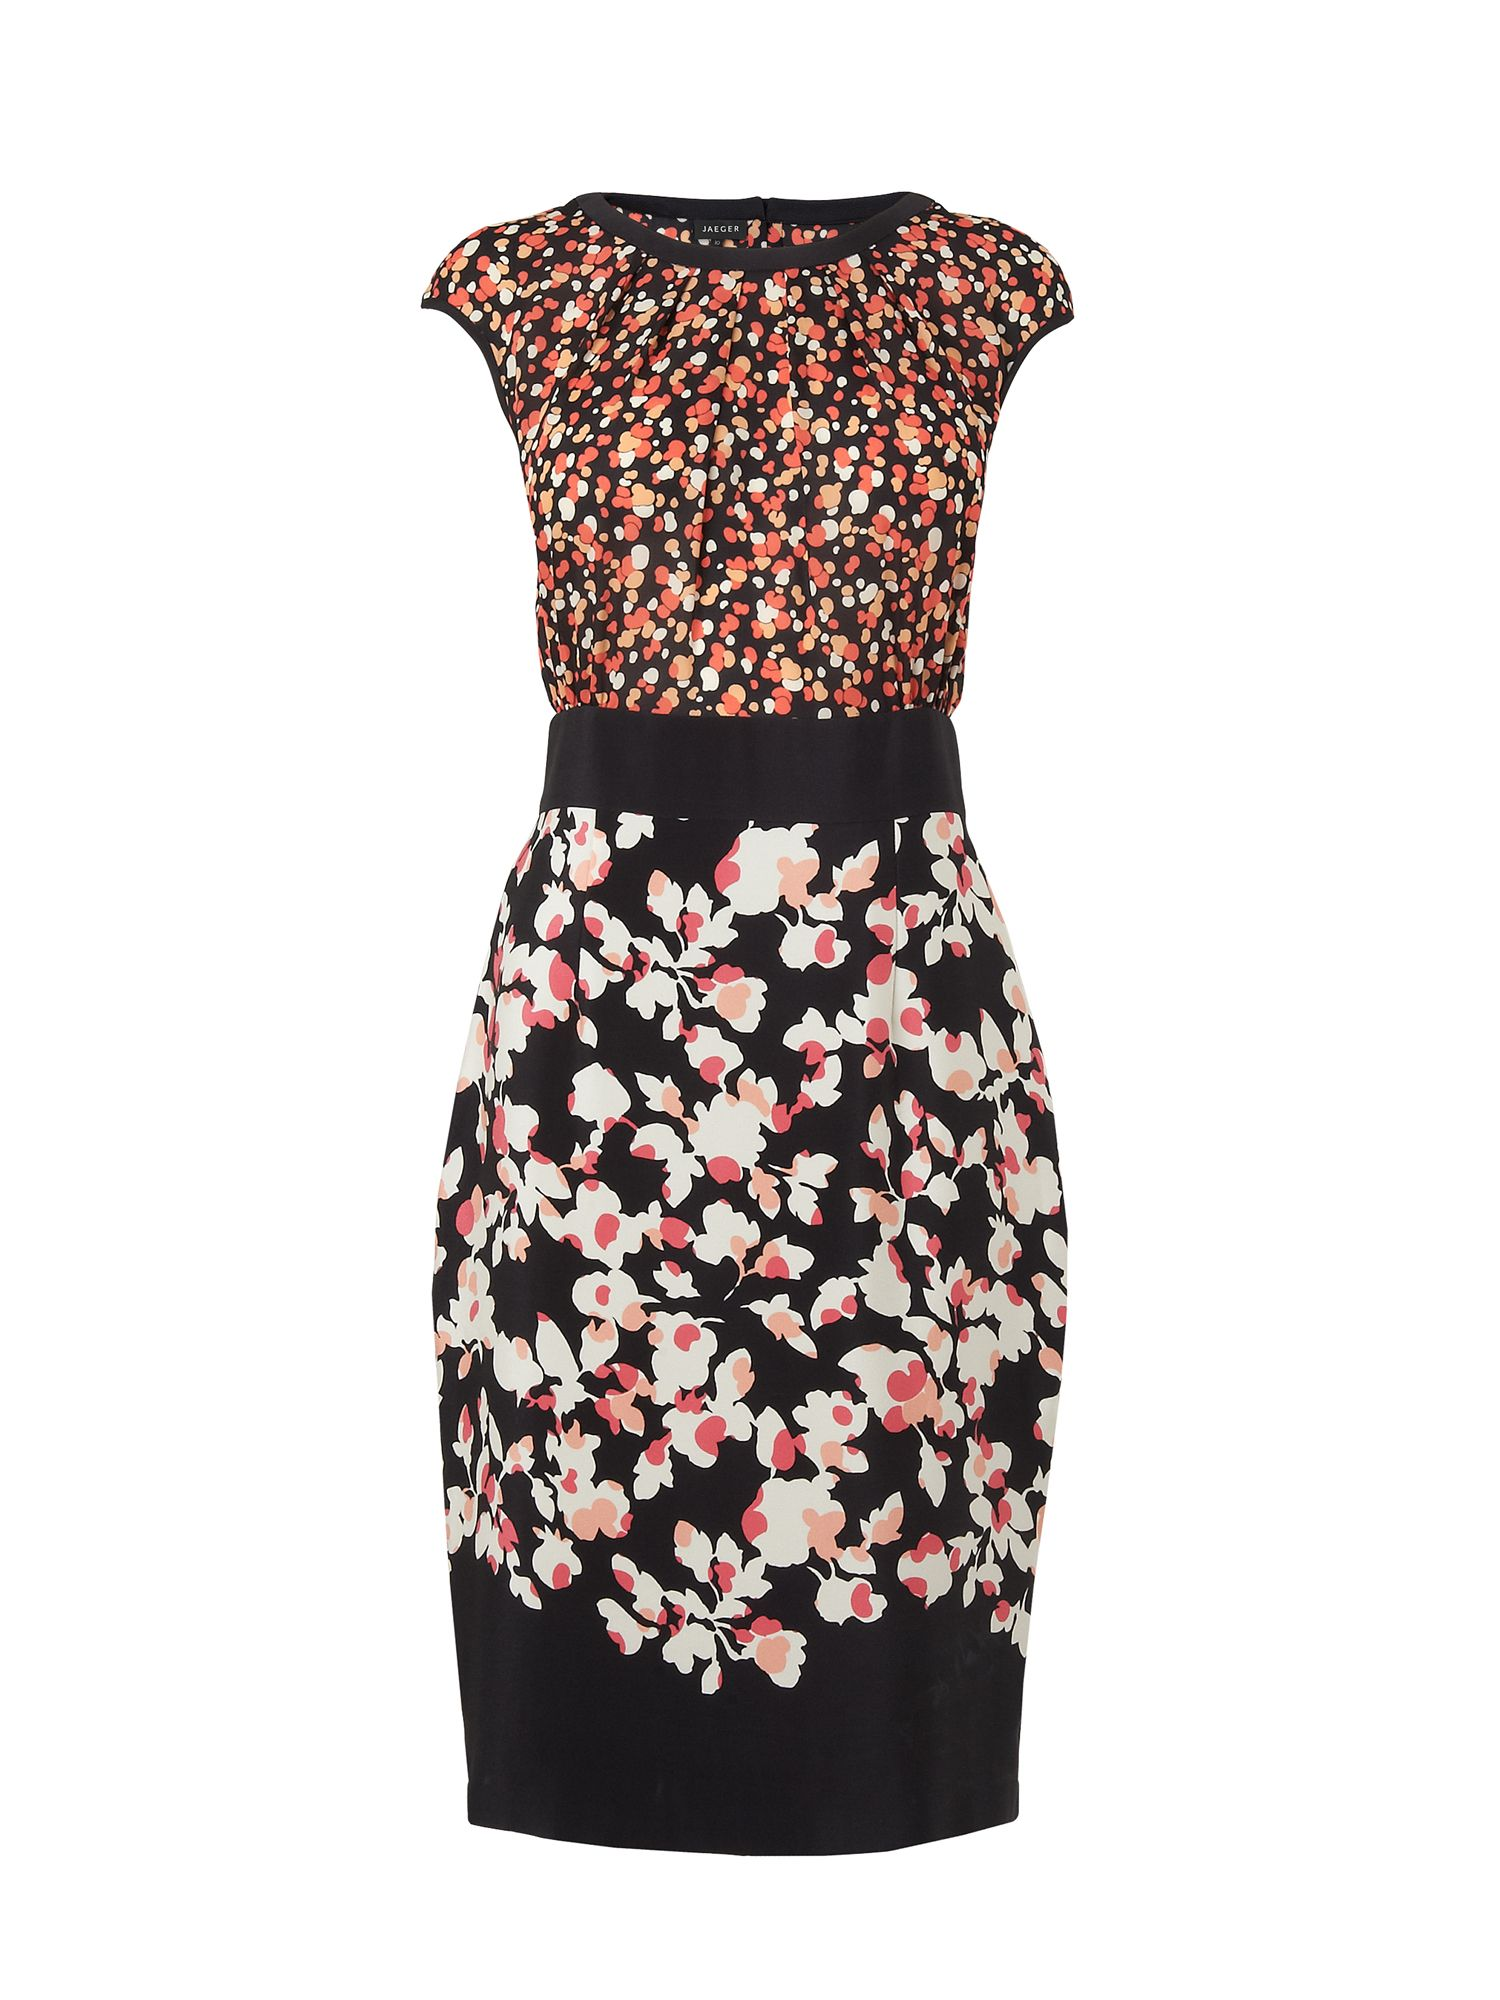 Bubble/floral print silk dress